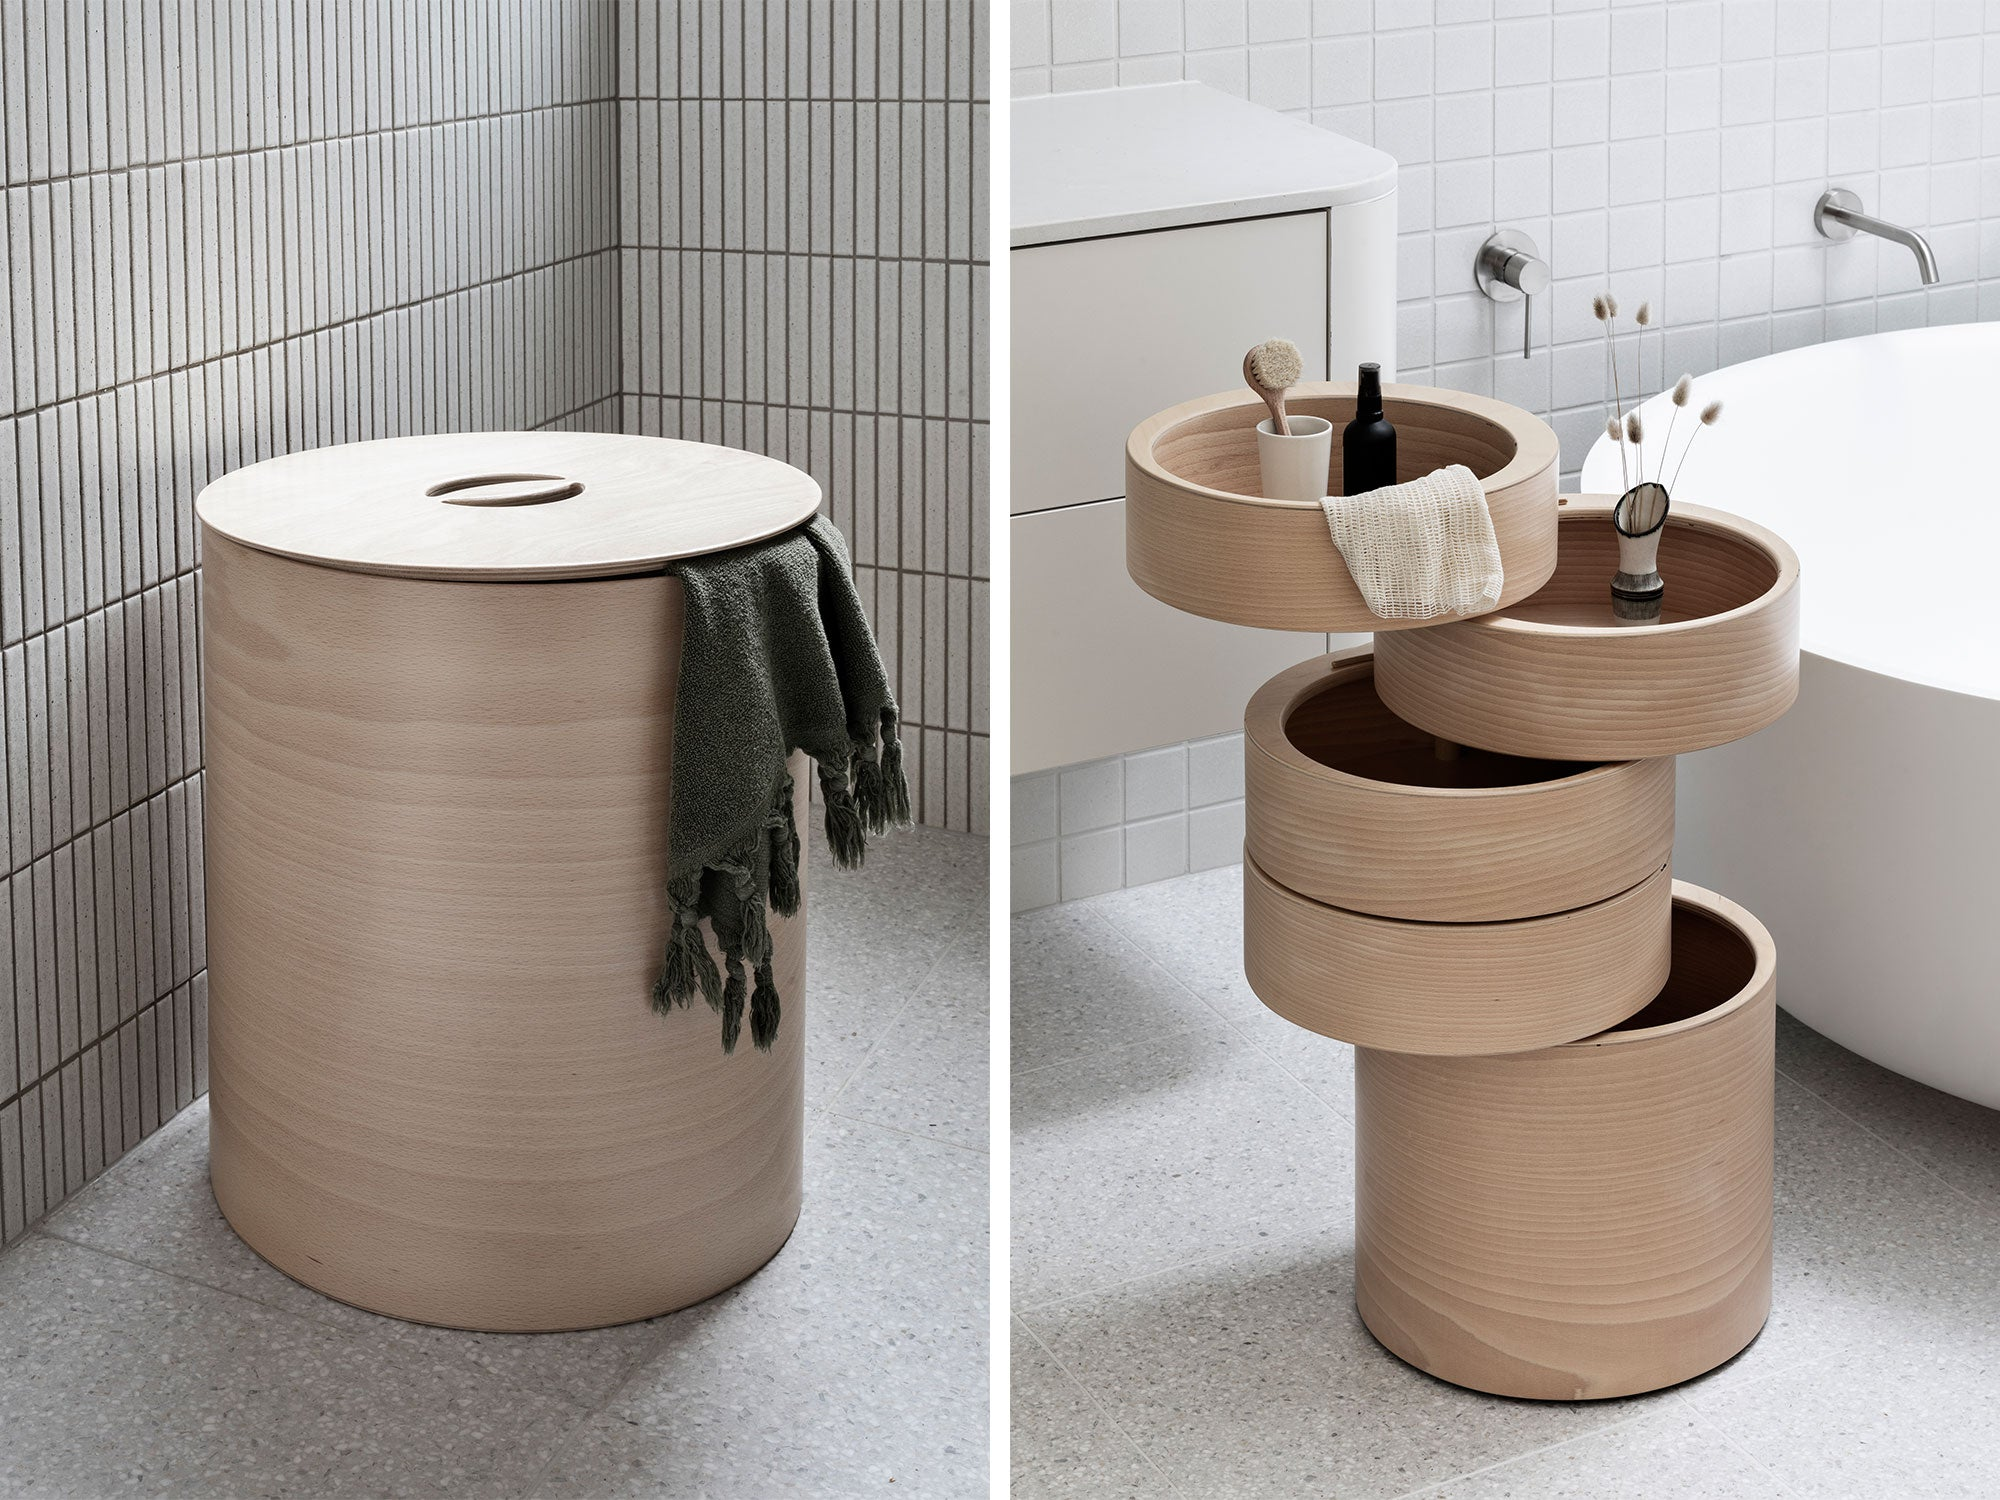 Minimalist Furniture Design and Modern Bathroom Storage